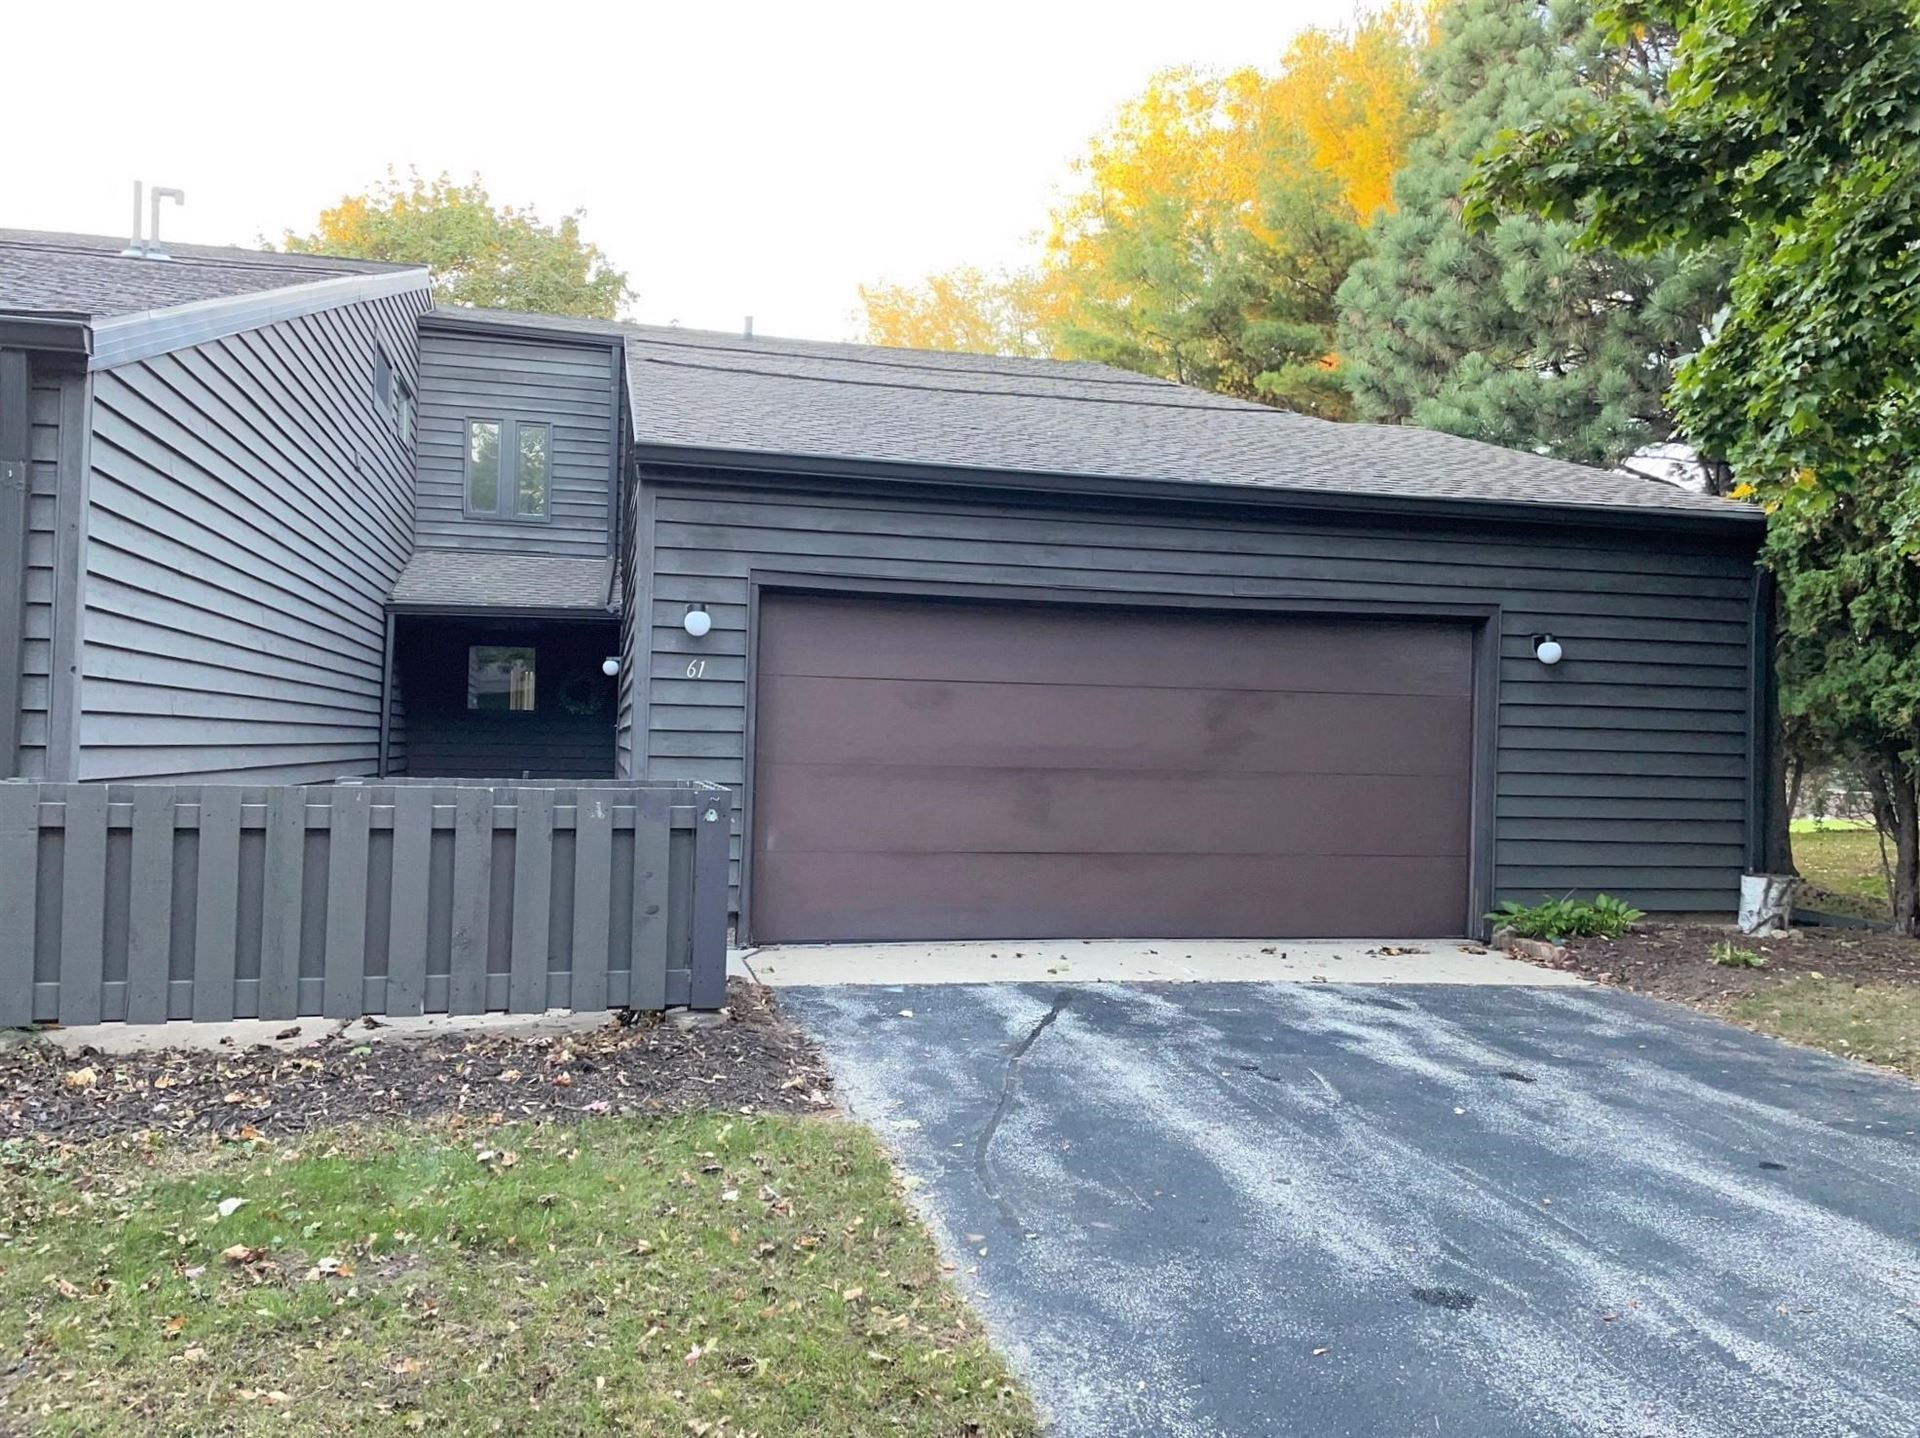 61 WEBSTER HEIGHTS Drive, Green Bay, WI 54301 - MLS#: 50249820